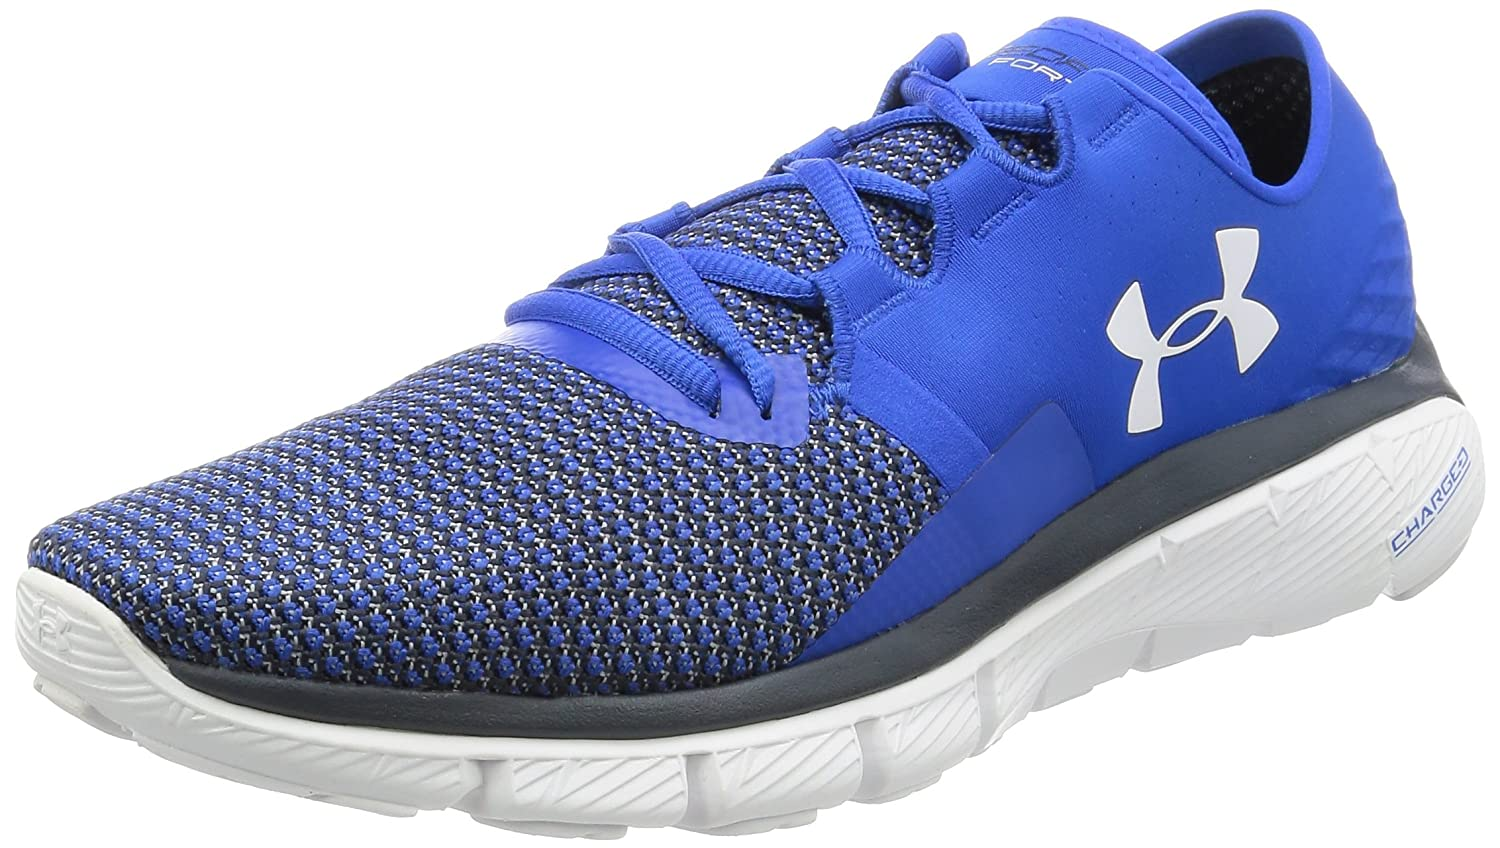 074960edd8267 Under Armour Speedform Fortis 2 Running Shoes  Amazon.co.uk  Shoes   Bags